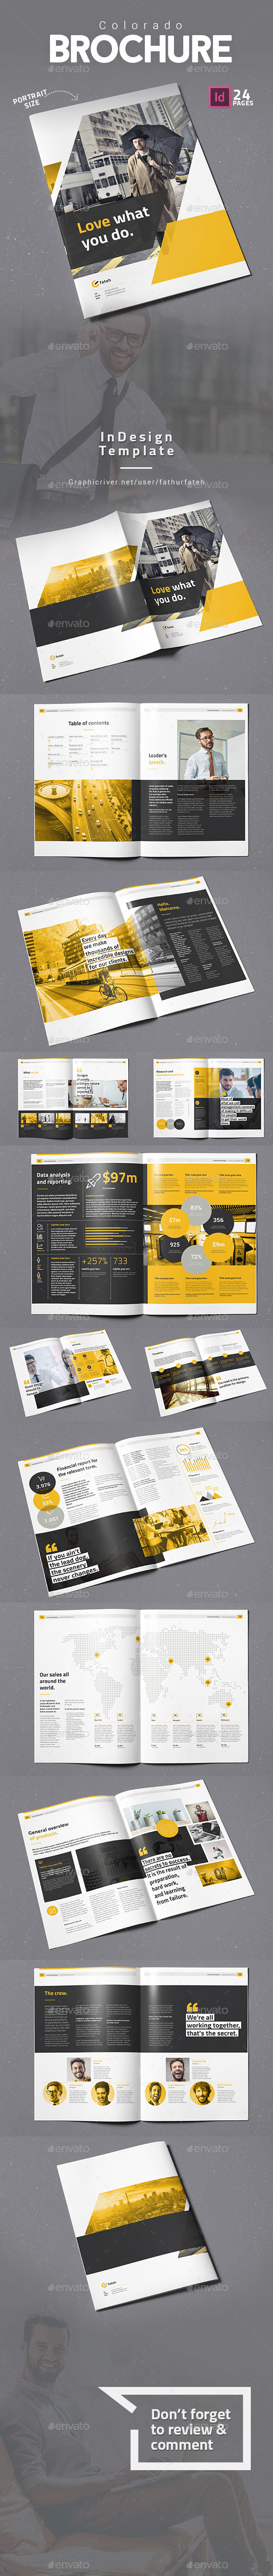 Colorado Brochure - Corporate Brochures